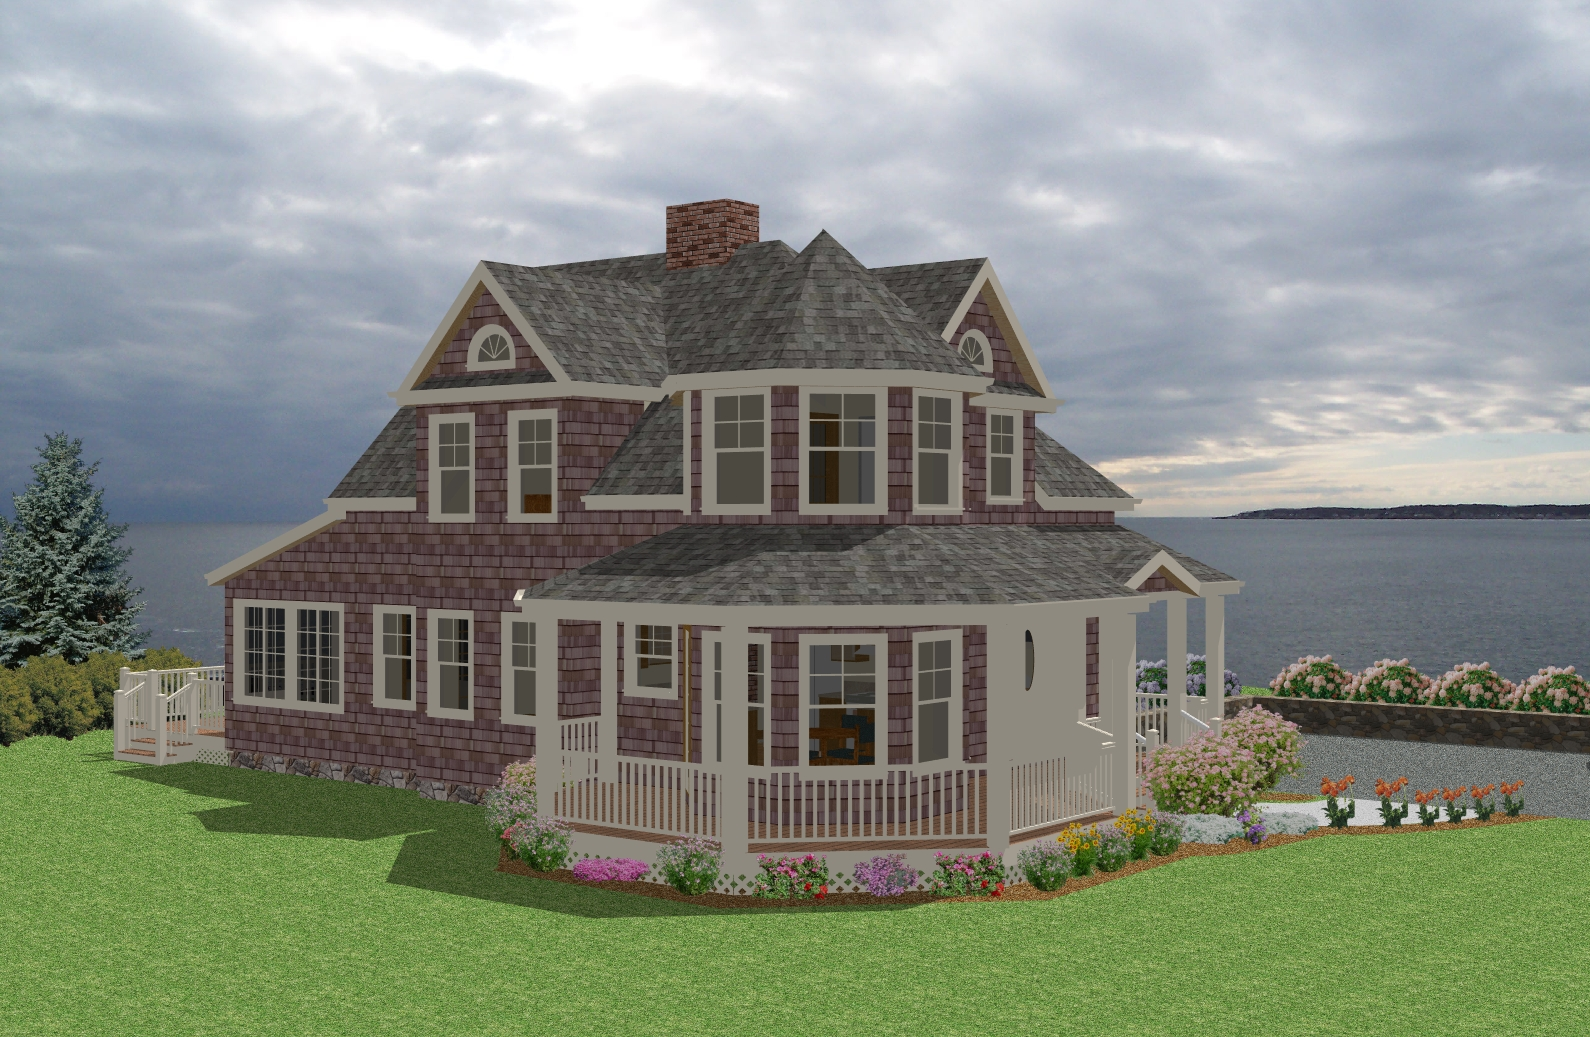 Home ideas new england coastal cottage plans for Beach style home designs